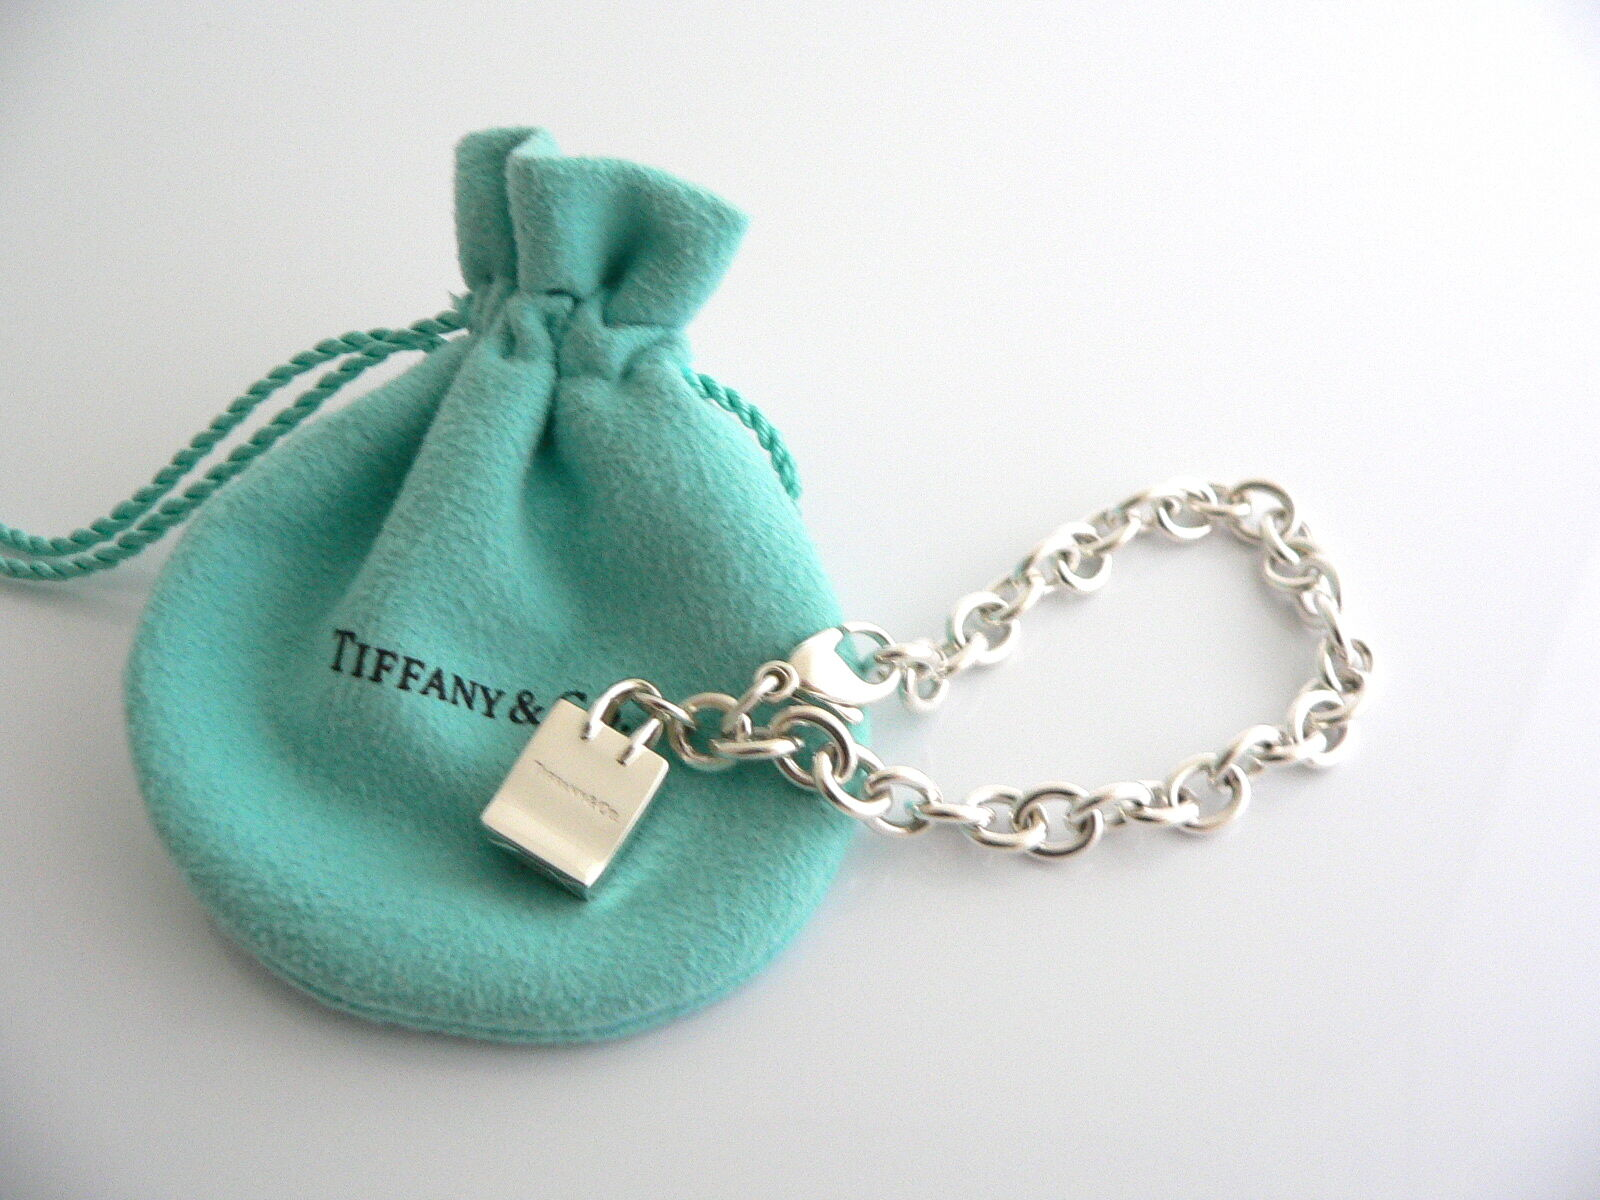 Tiffany & Co Silver Shopping Bag Bracelet Bangle Charm Clasp Gift Pouch